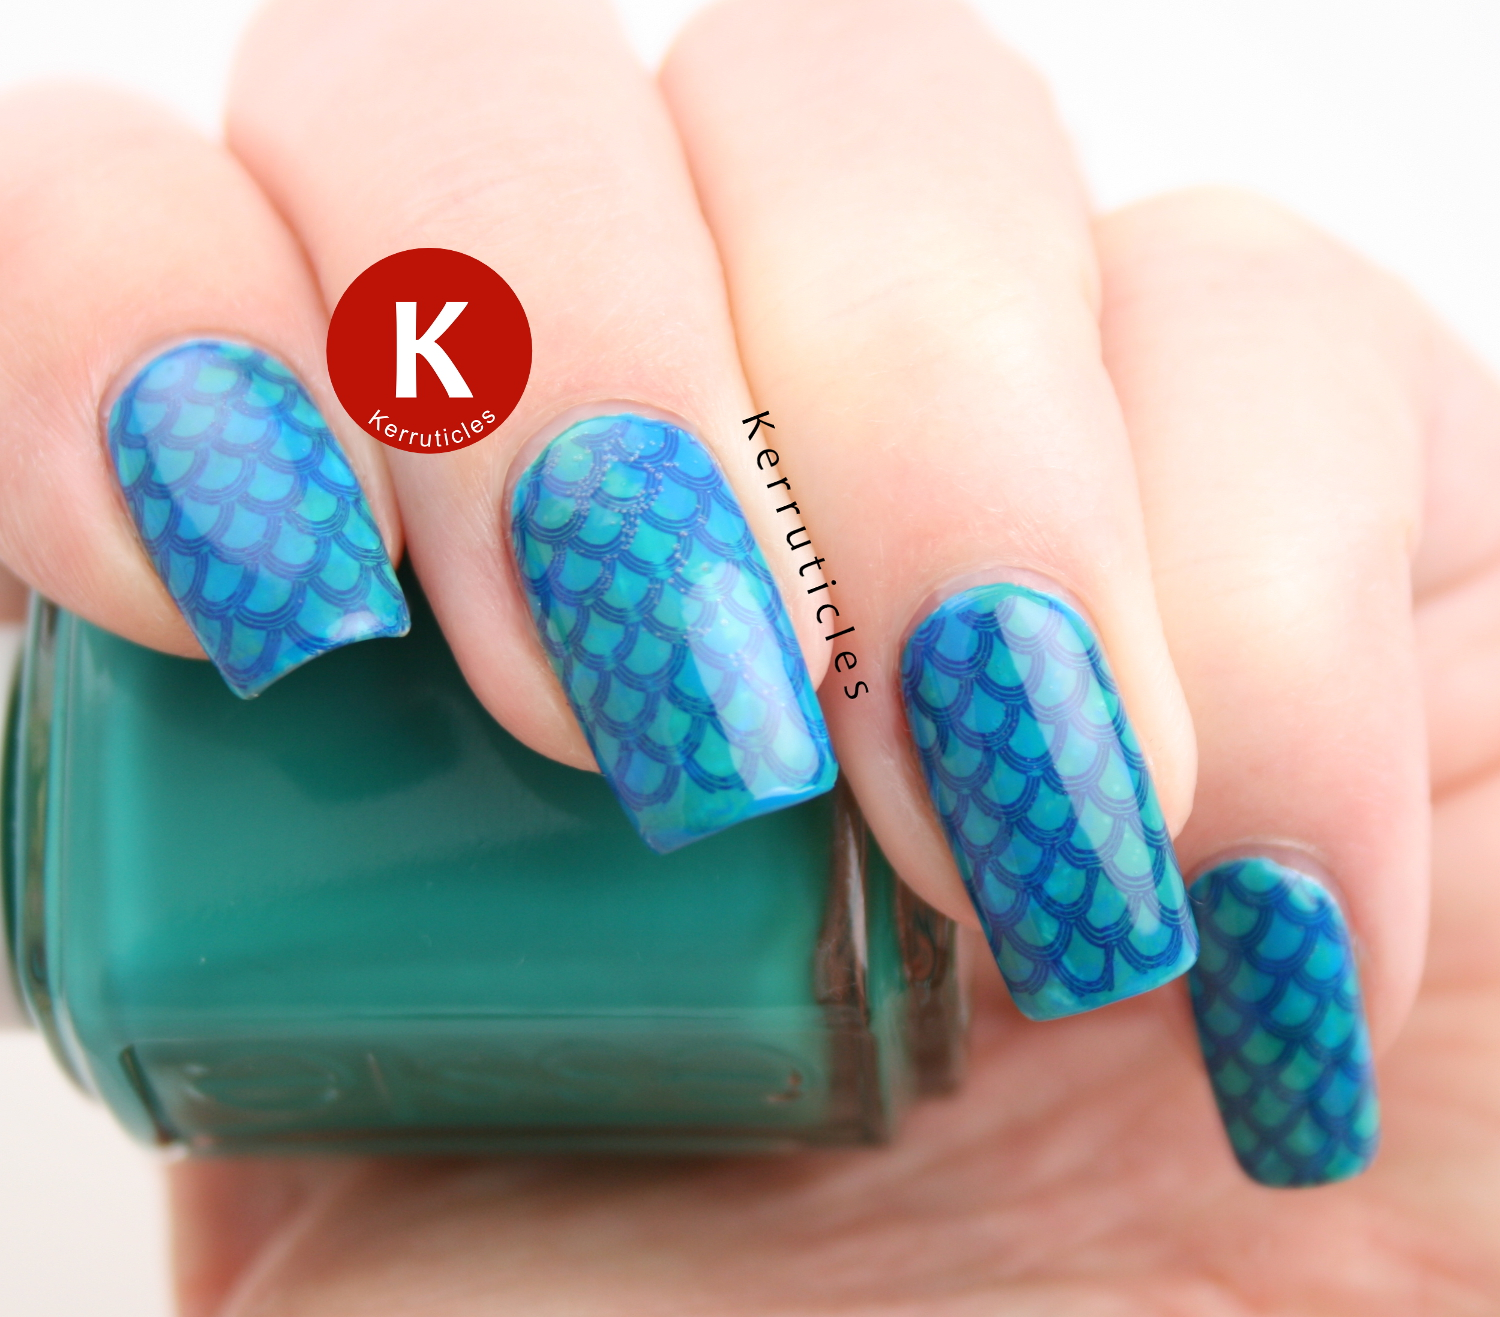 Green and blue mermaid scales